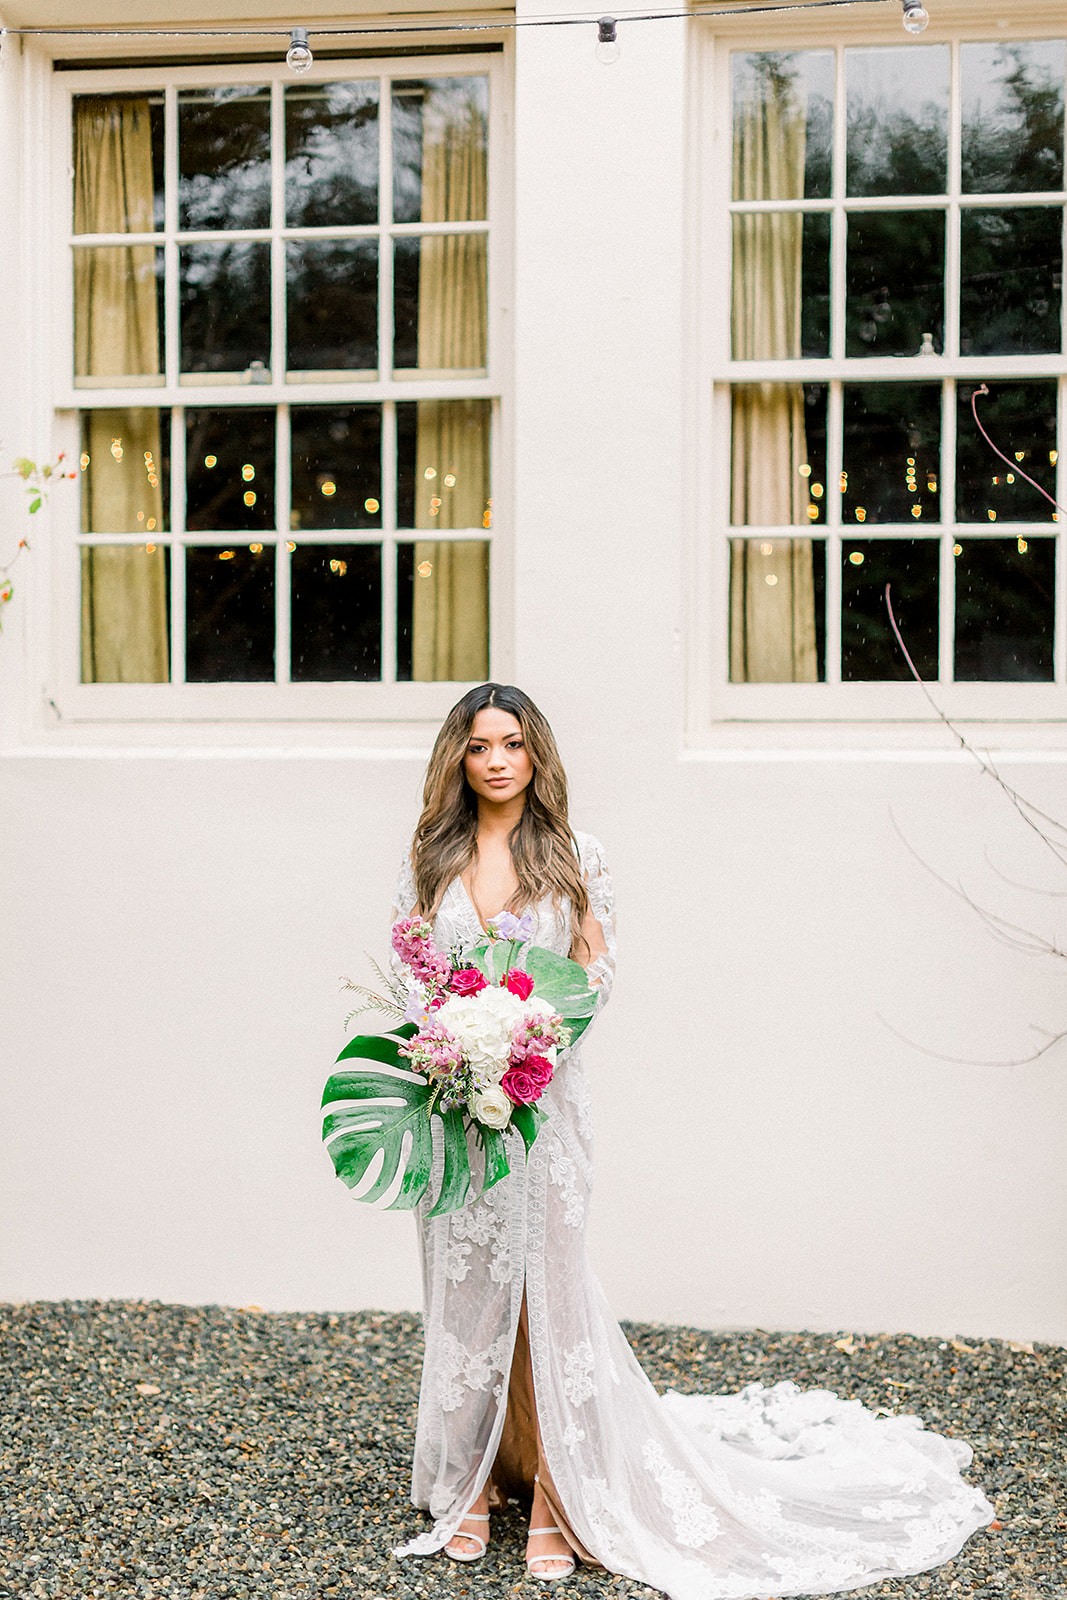 seattle wedding, seattle bride, styled shoot, seattle photographer, seattle wedding photography, seattle wedding design, seattle bride ideas